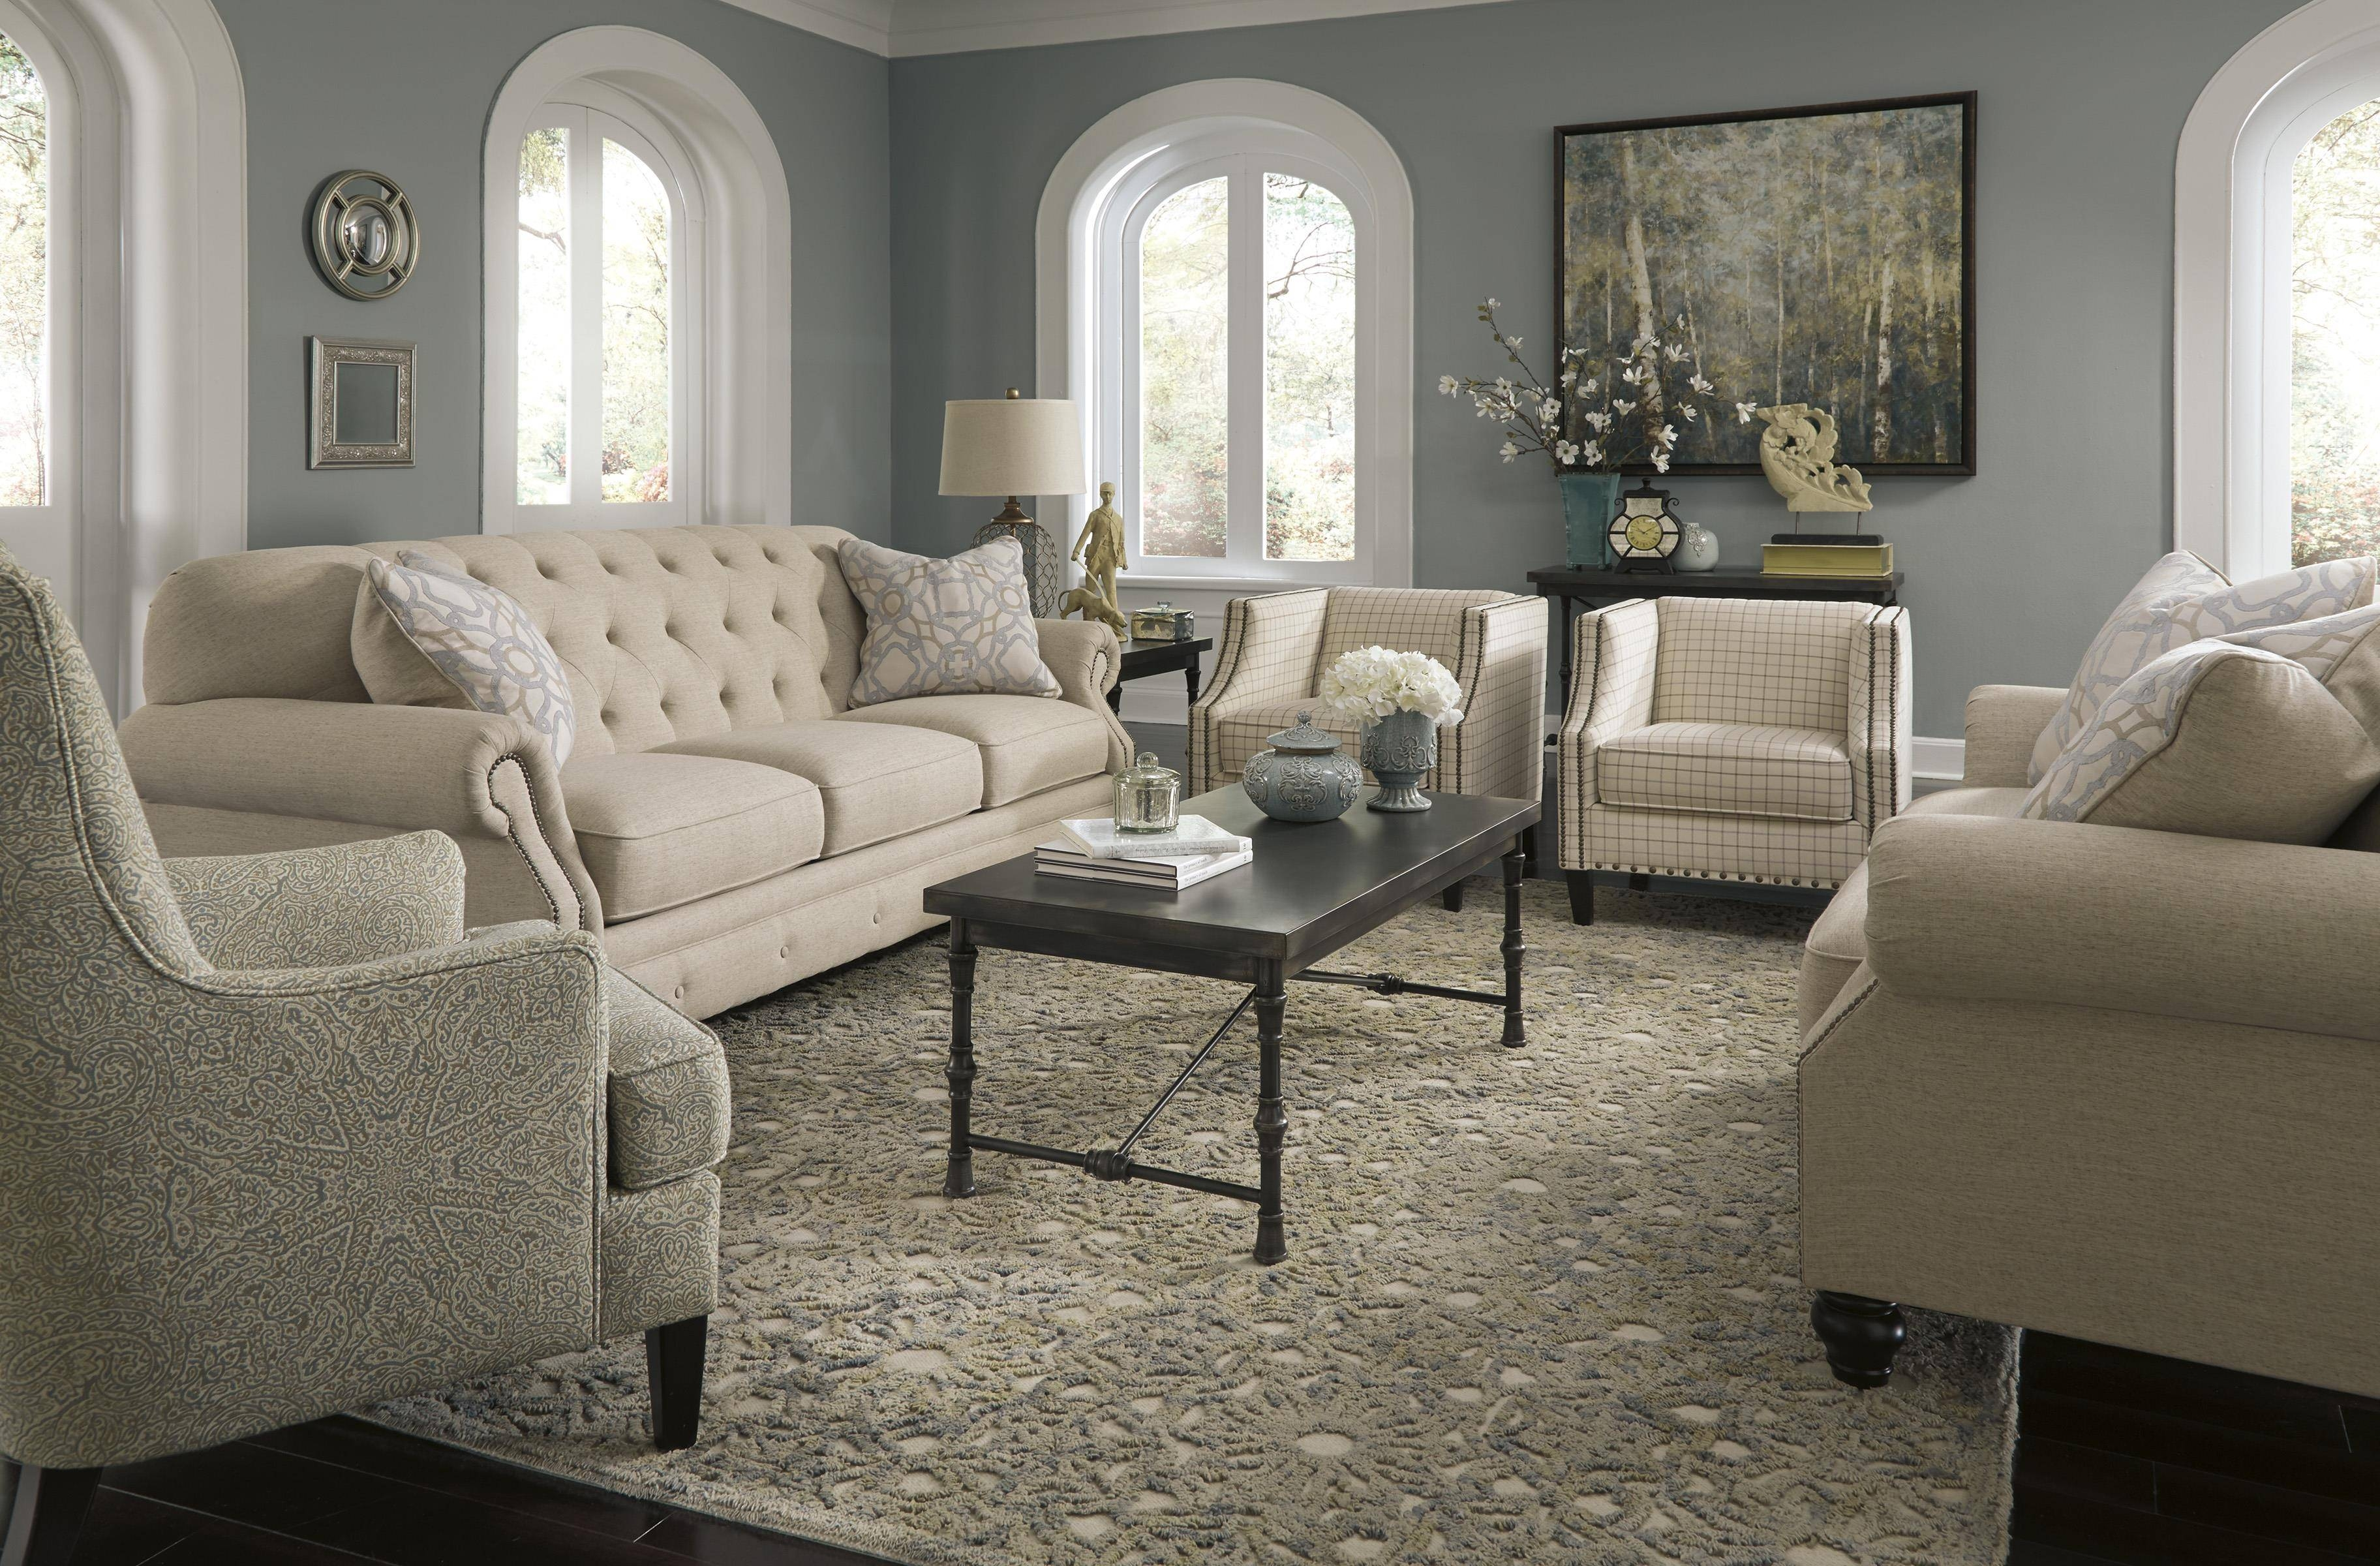 Signature Designashley Kieran Traditional Sofa With Tufted throughout Ashley Tufted Sofa (Image 19 of 30)